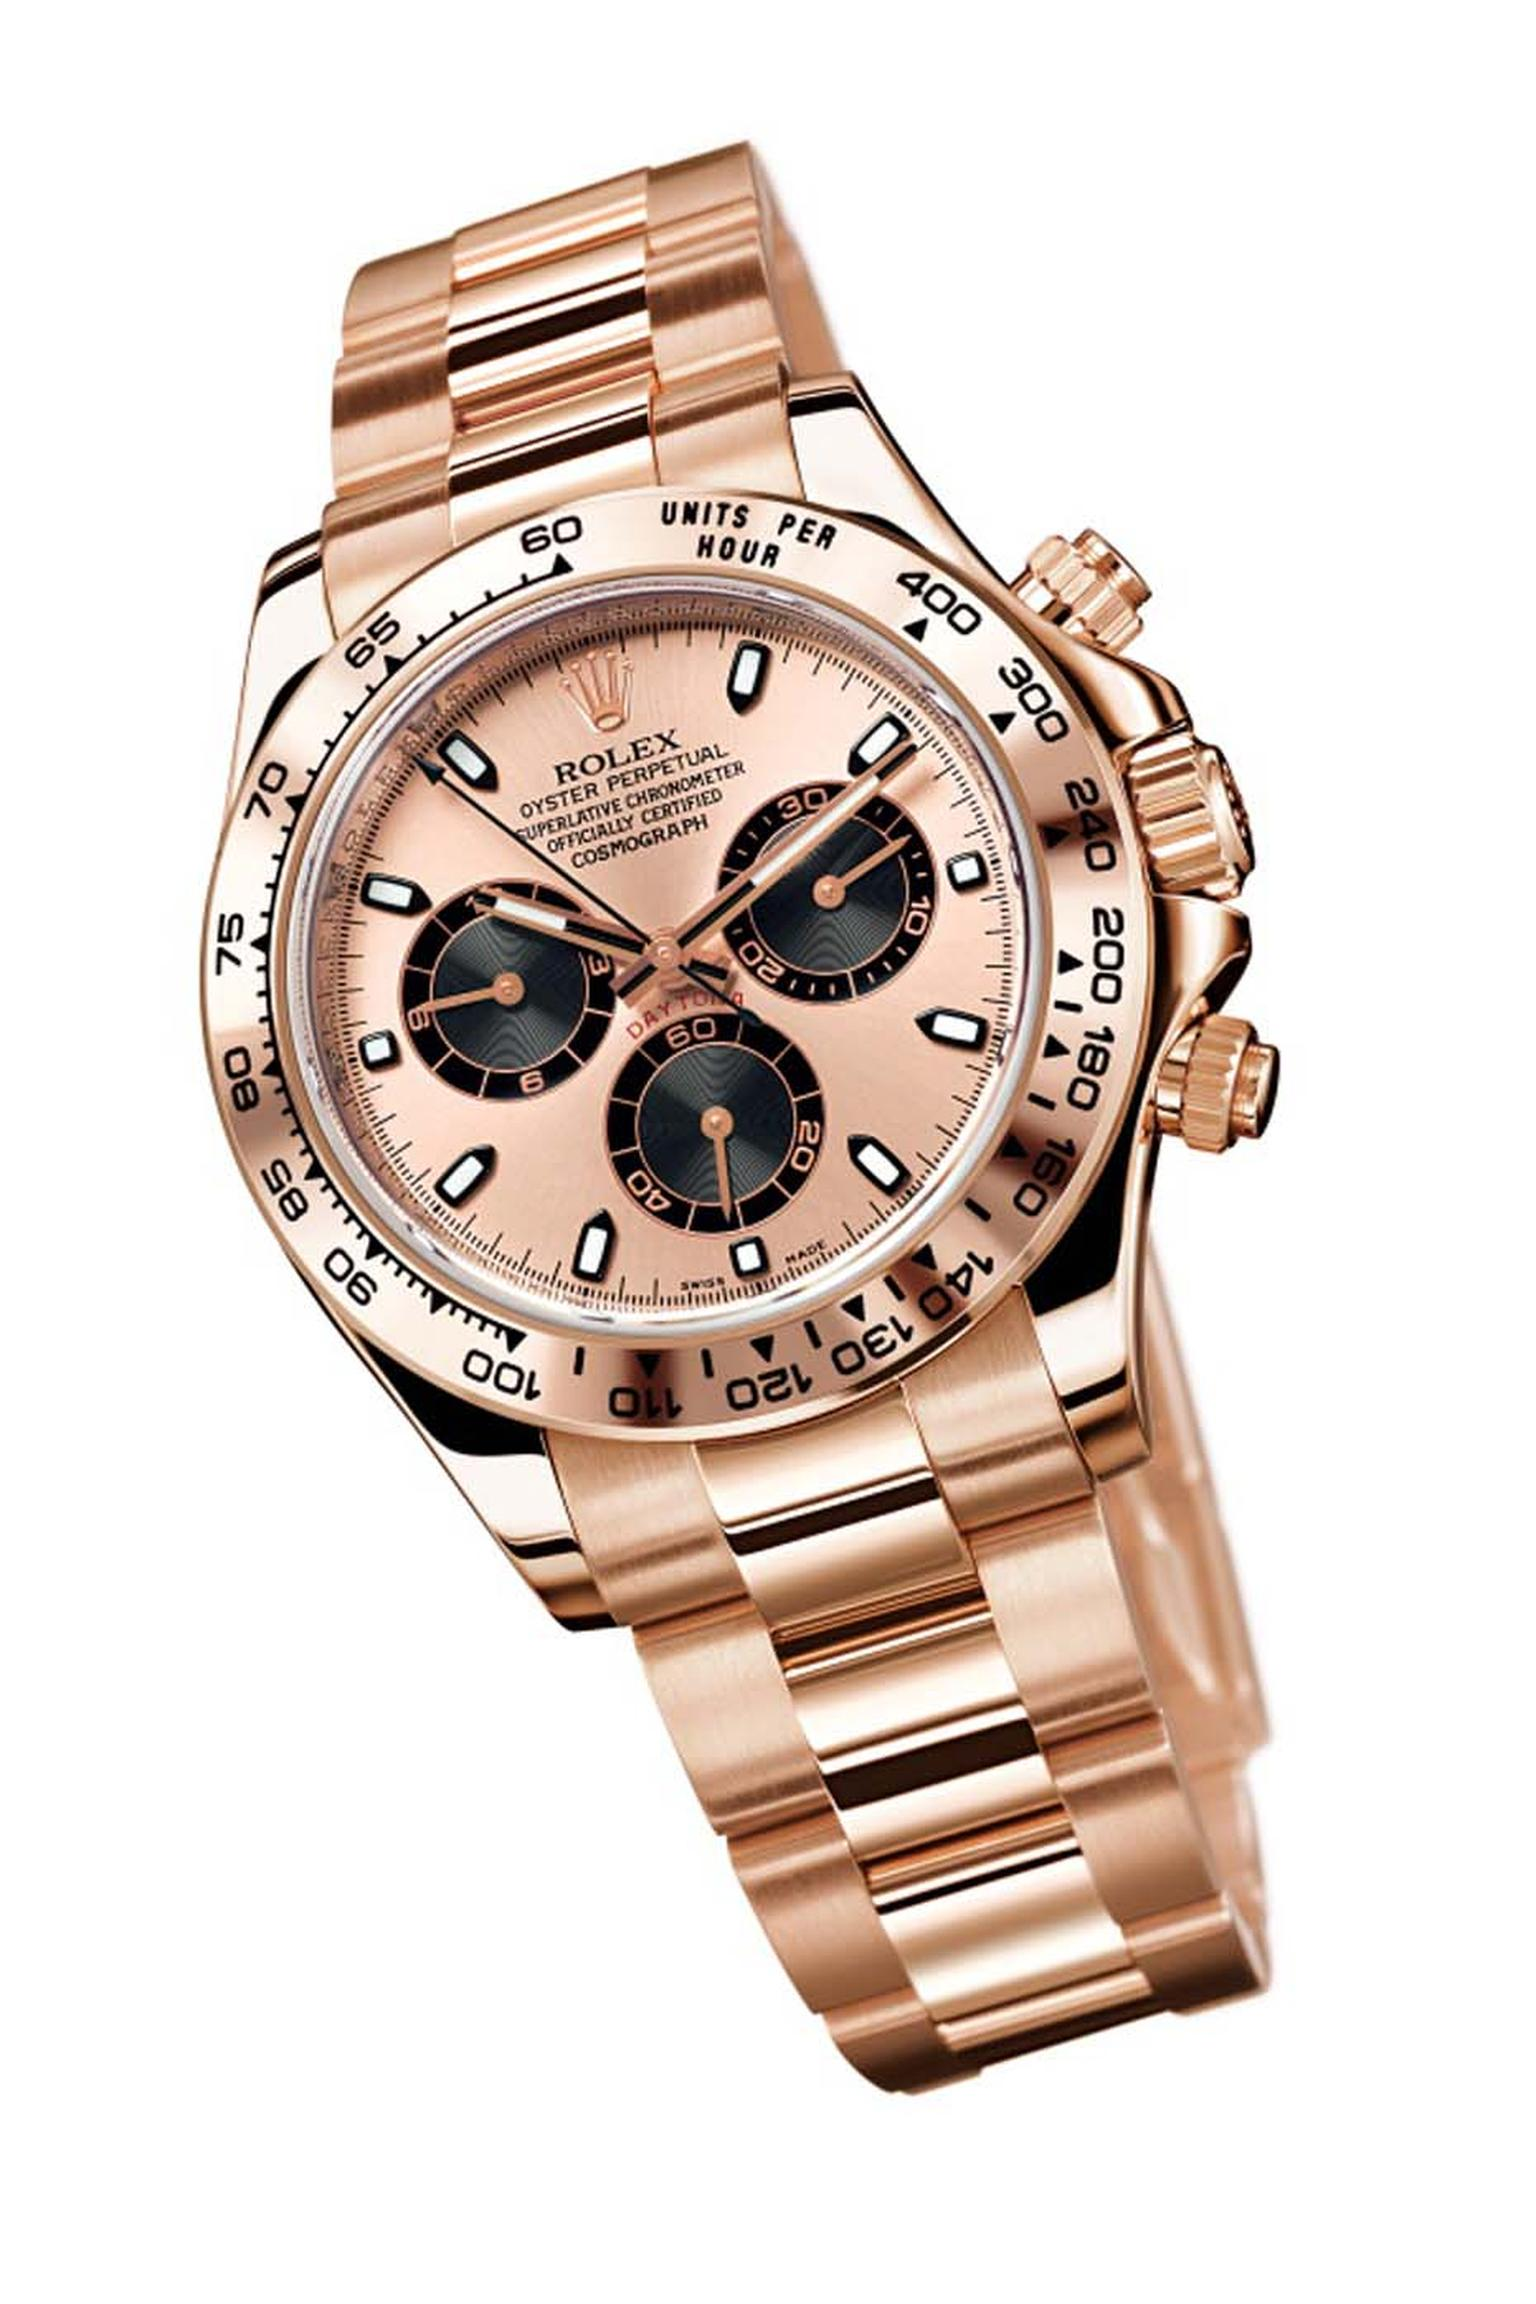 Rolex Cosmograph Daytona Everose watch, with a rose gold dial and bracelet, and black counters.